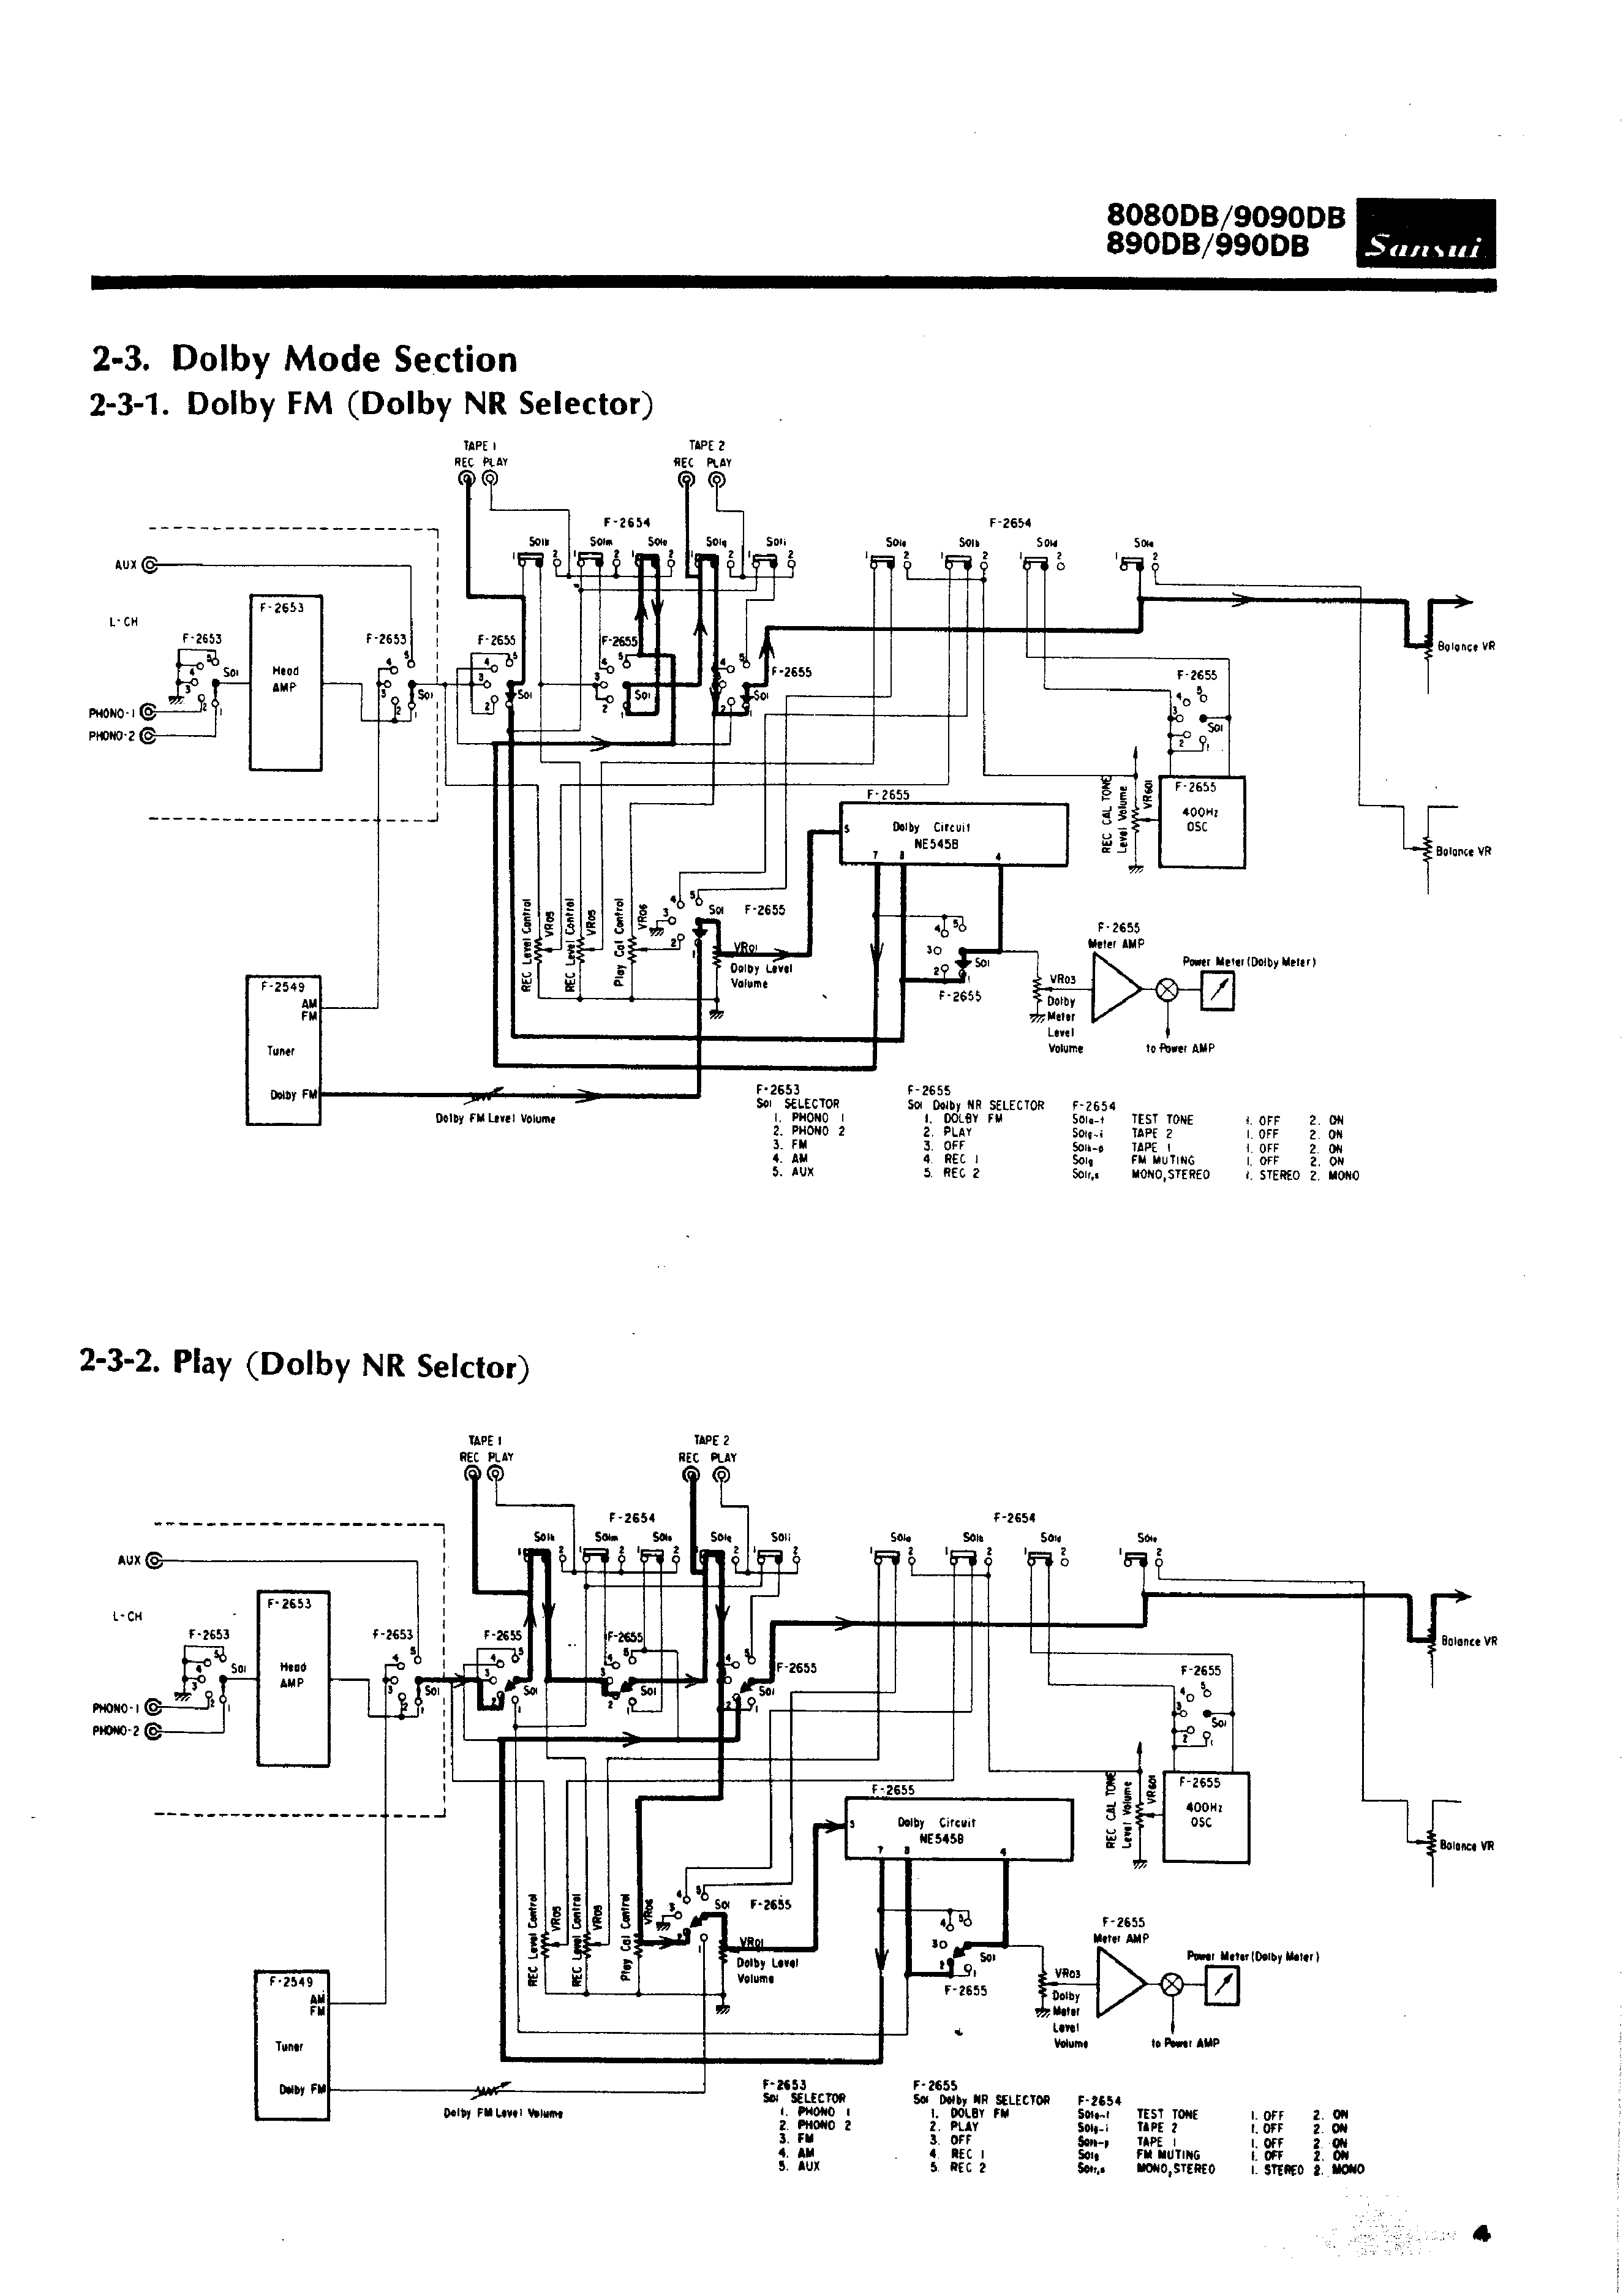 service manual for sansui 9090db